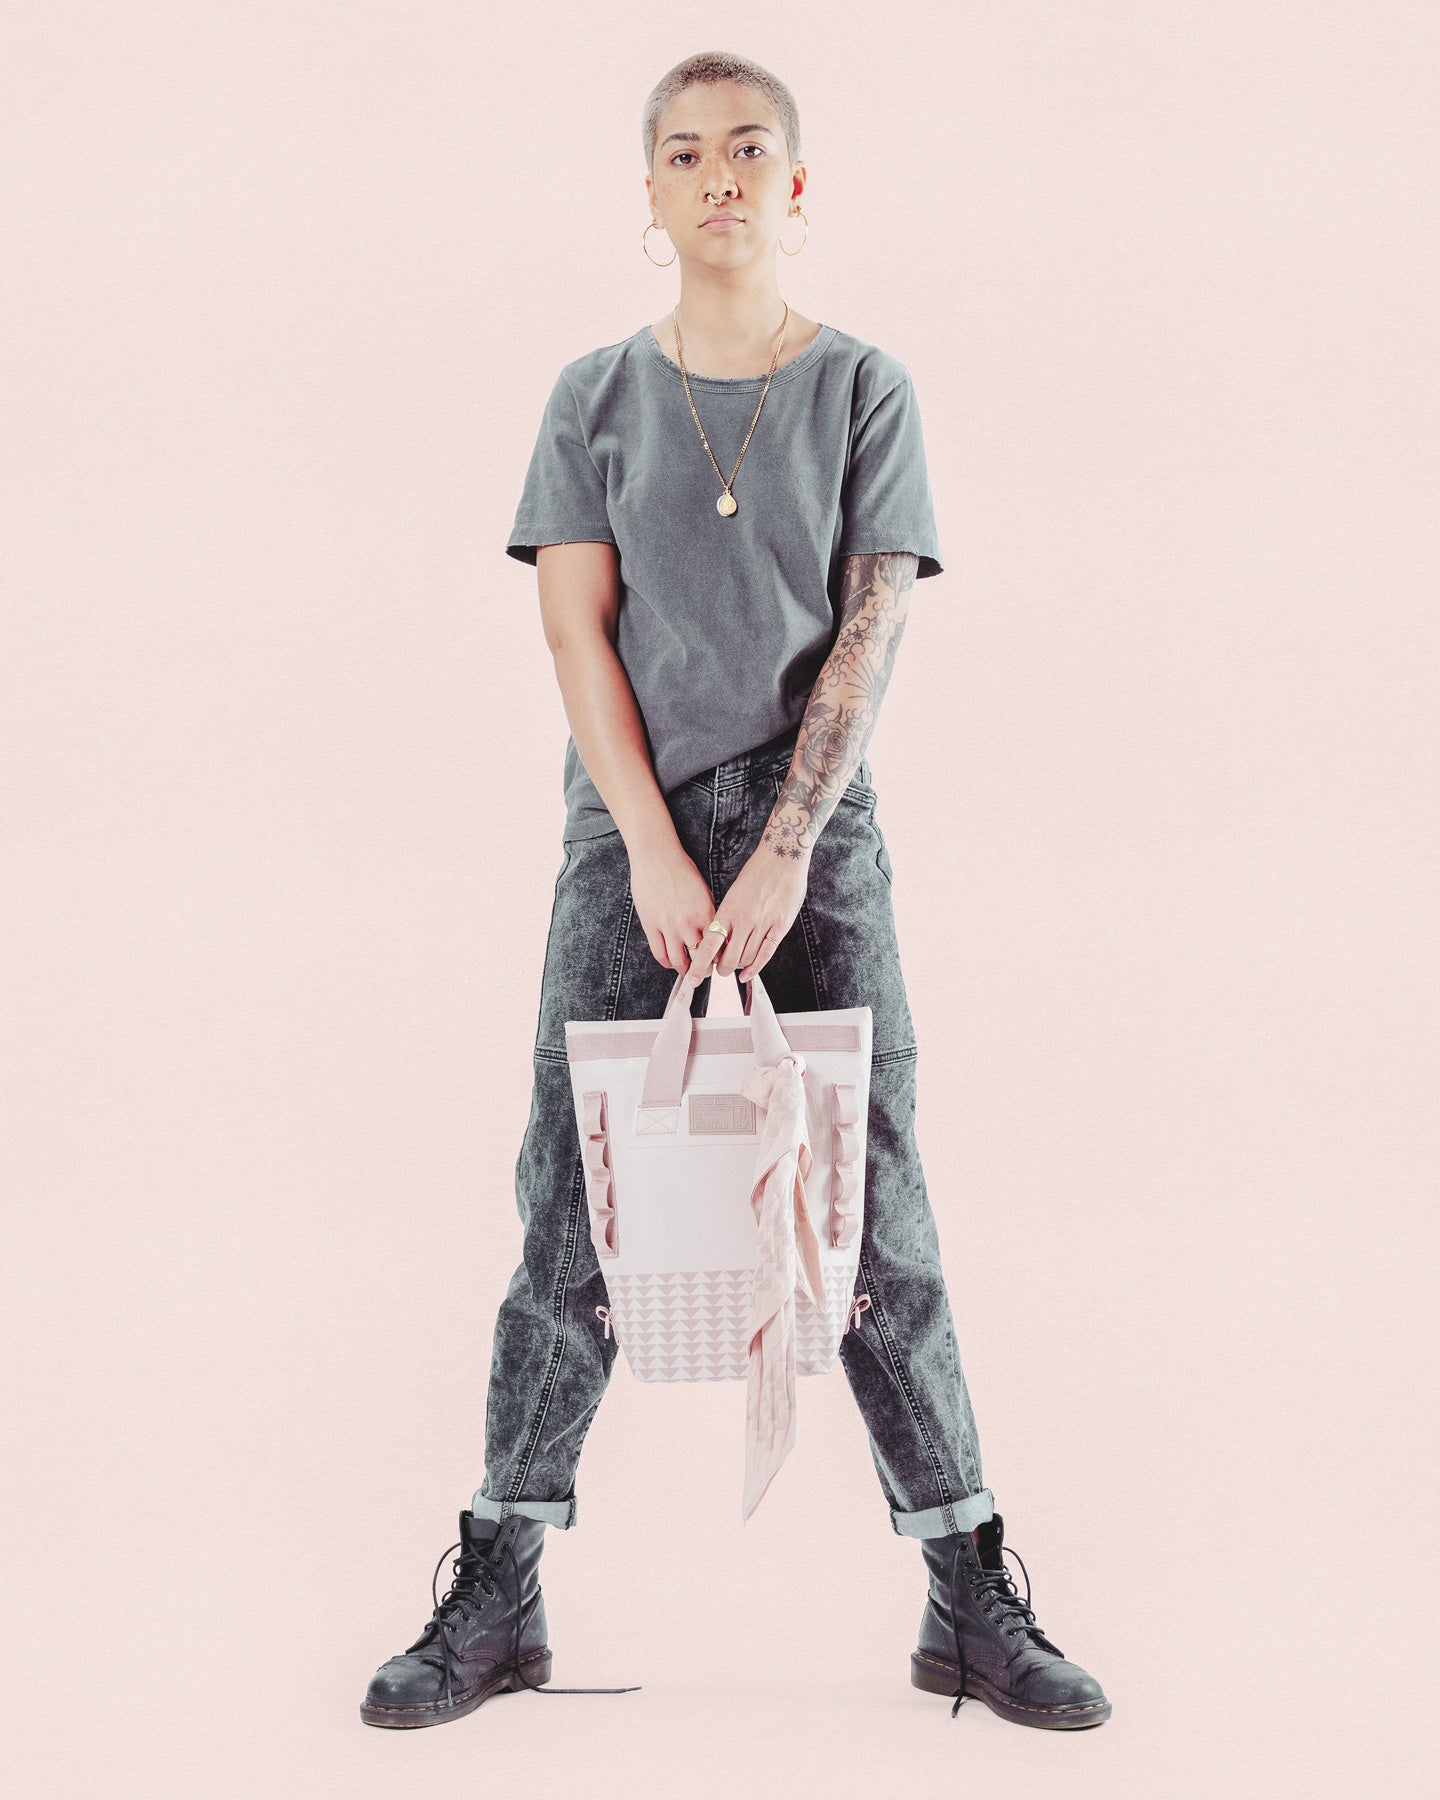 A female model uses the pink so ill bandana as an accessory for her bag